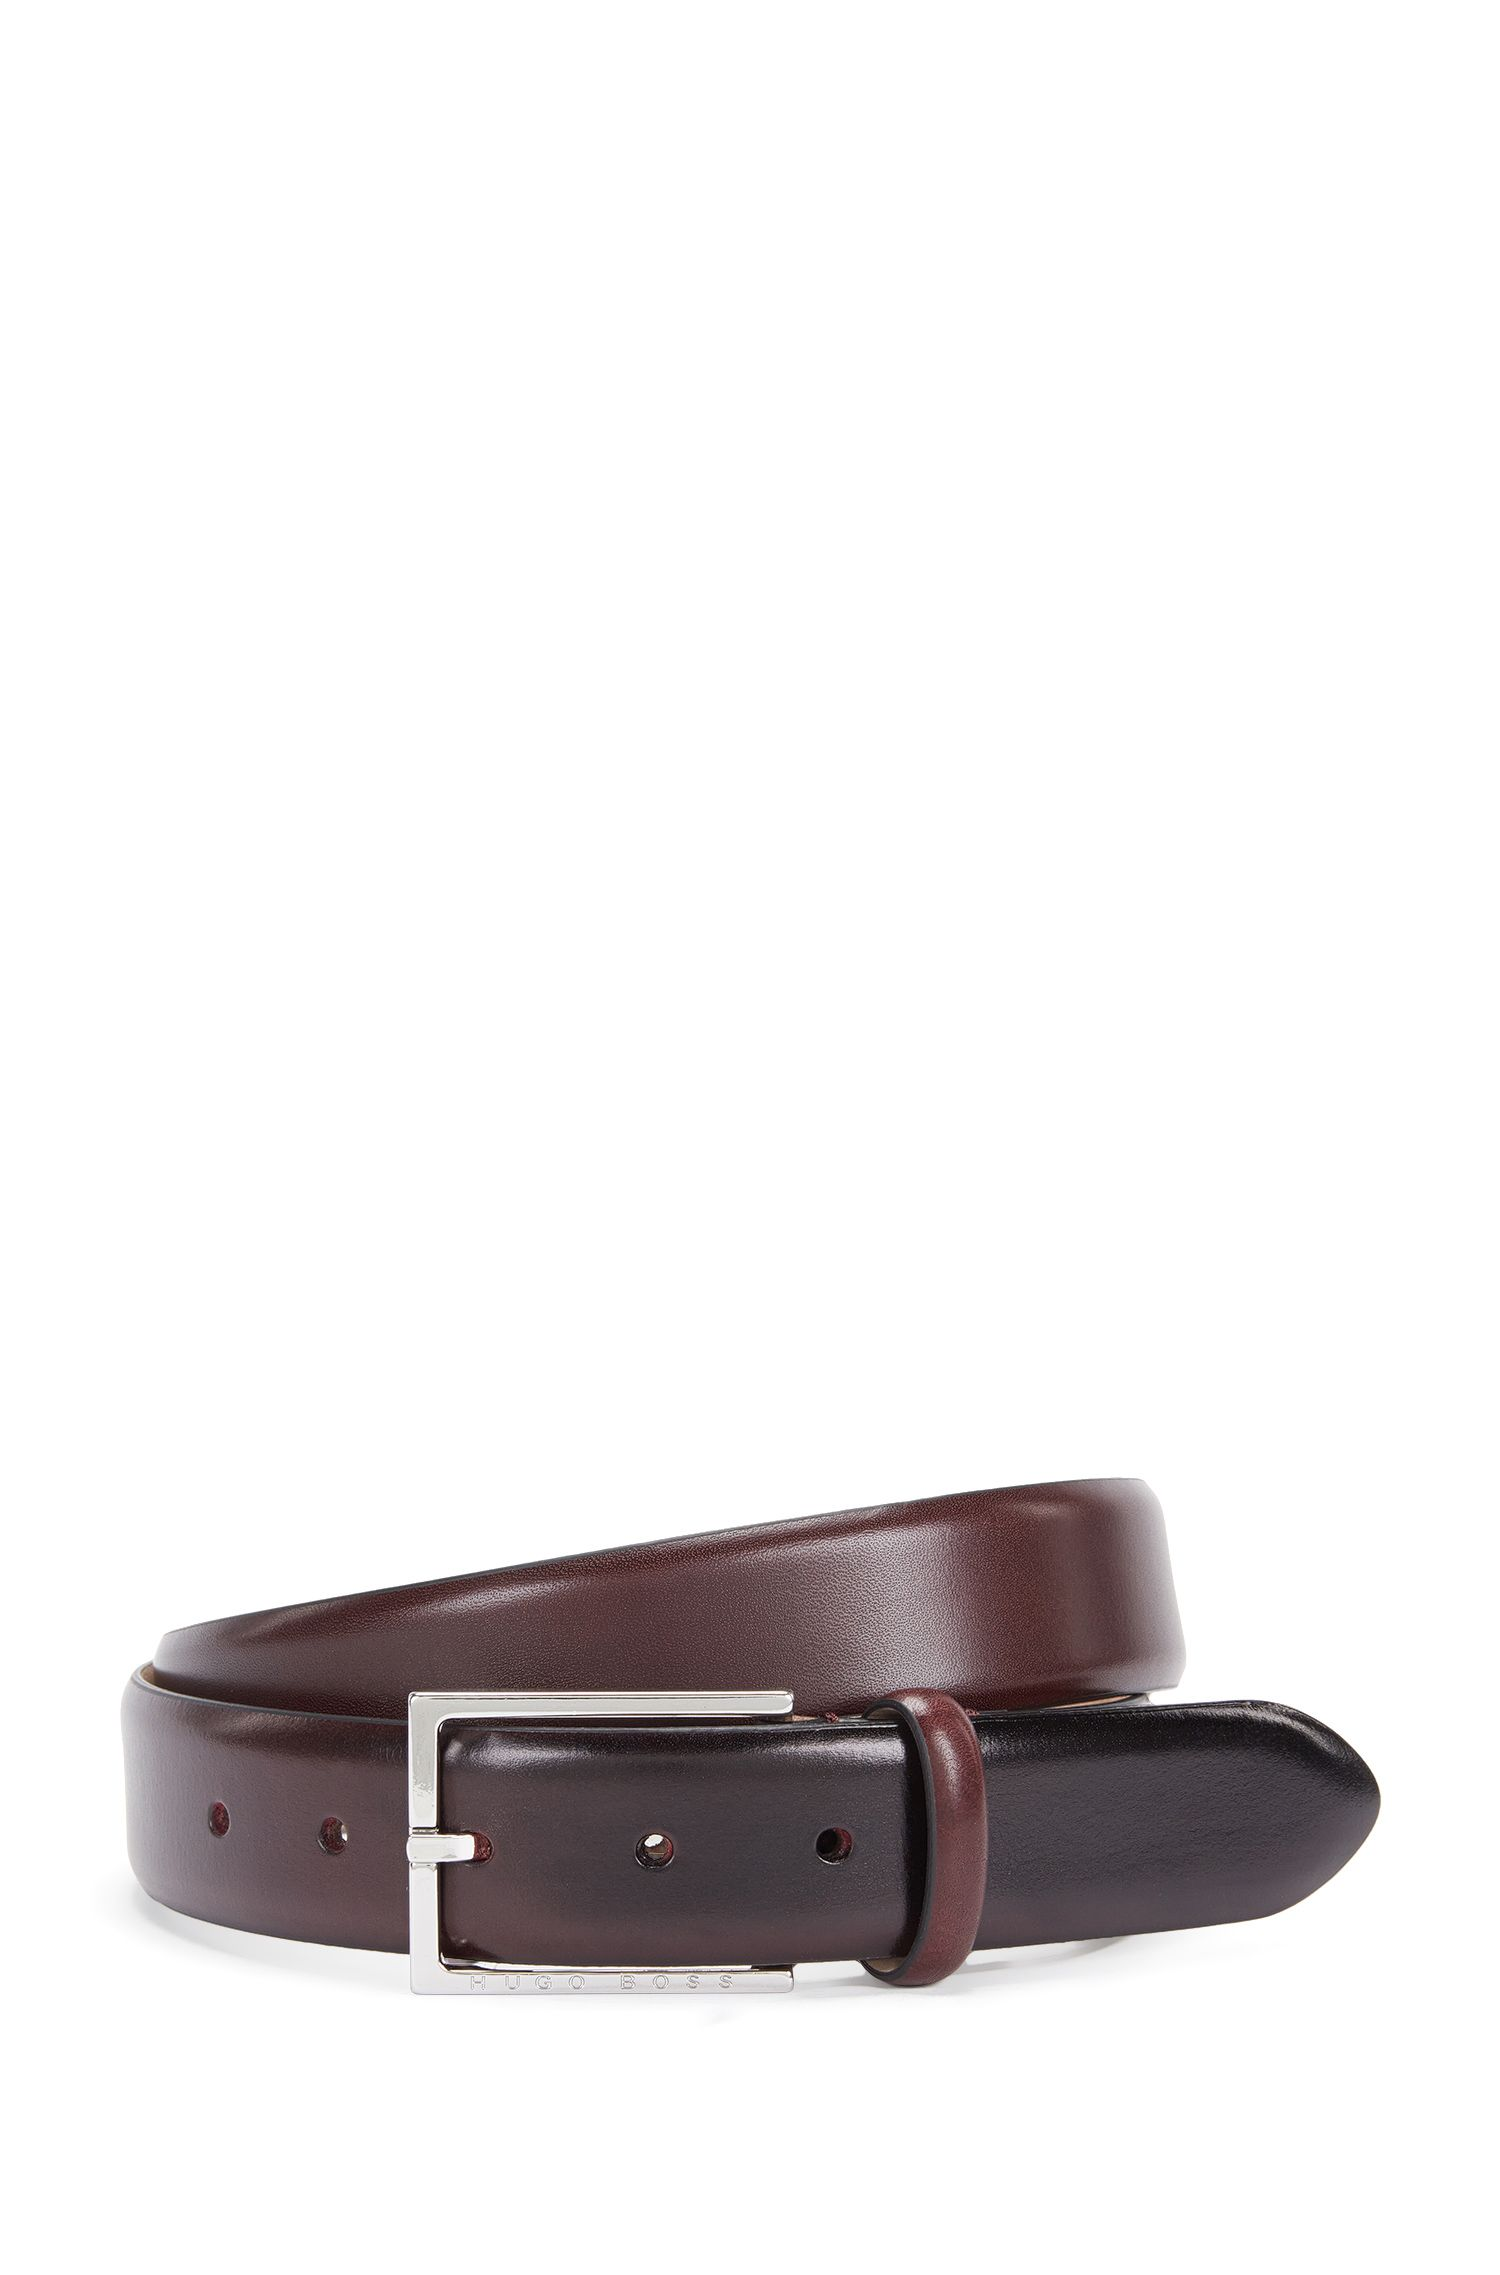 Ceinture en cuir faite main : « Ceretio_Sz35_ltpl »